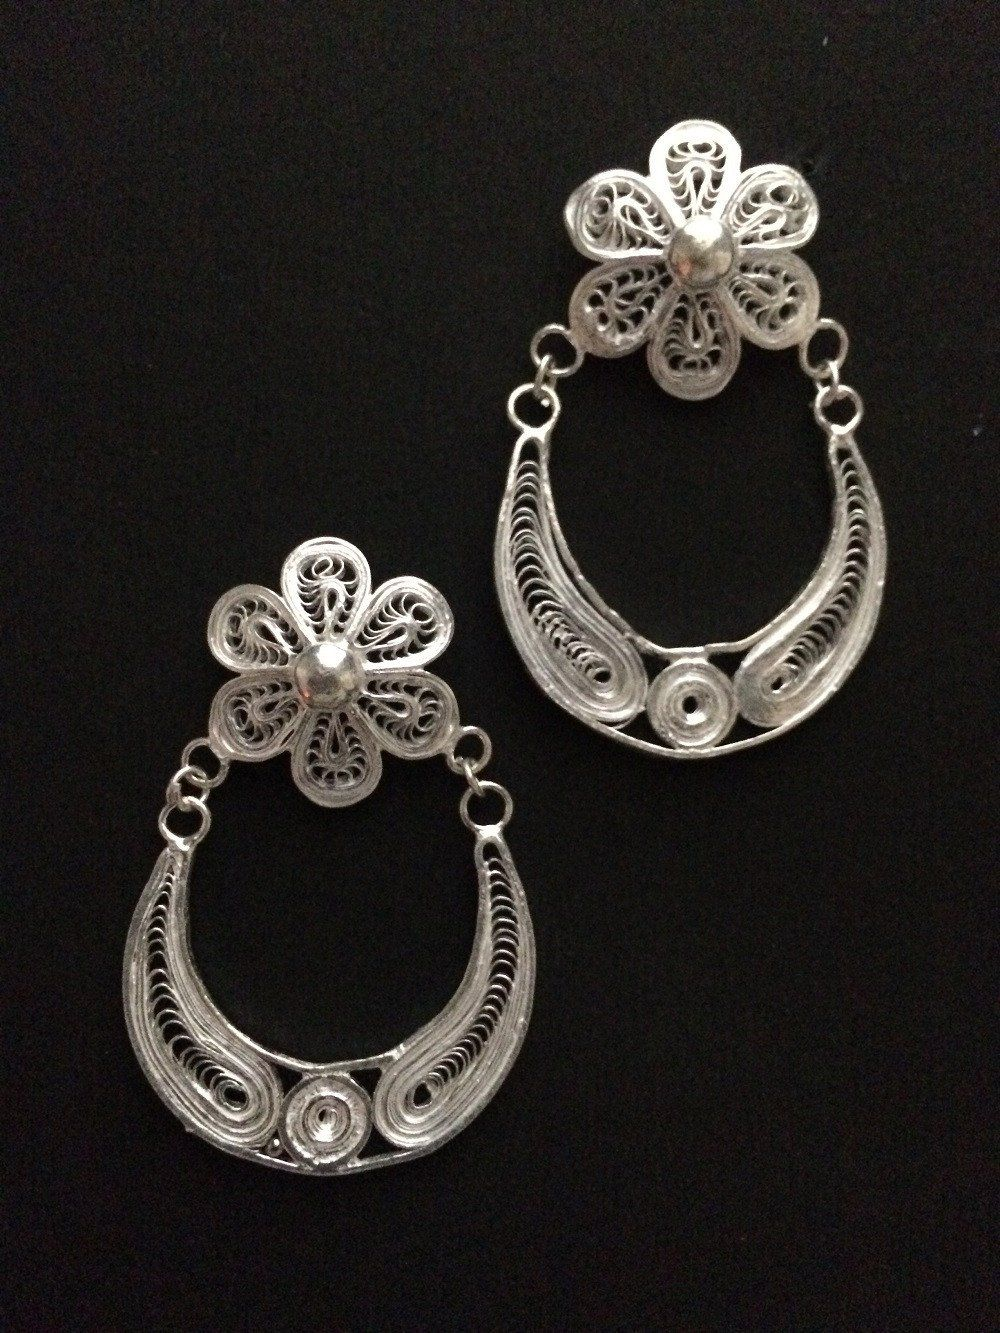 c1573909ecc7c Silver Chandbali | cheezein | Filigree earrings, Silver earrings ...